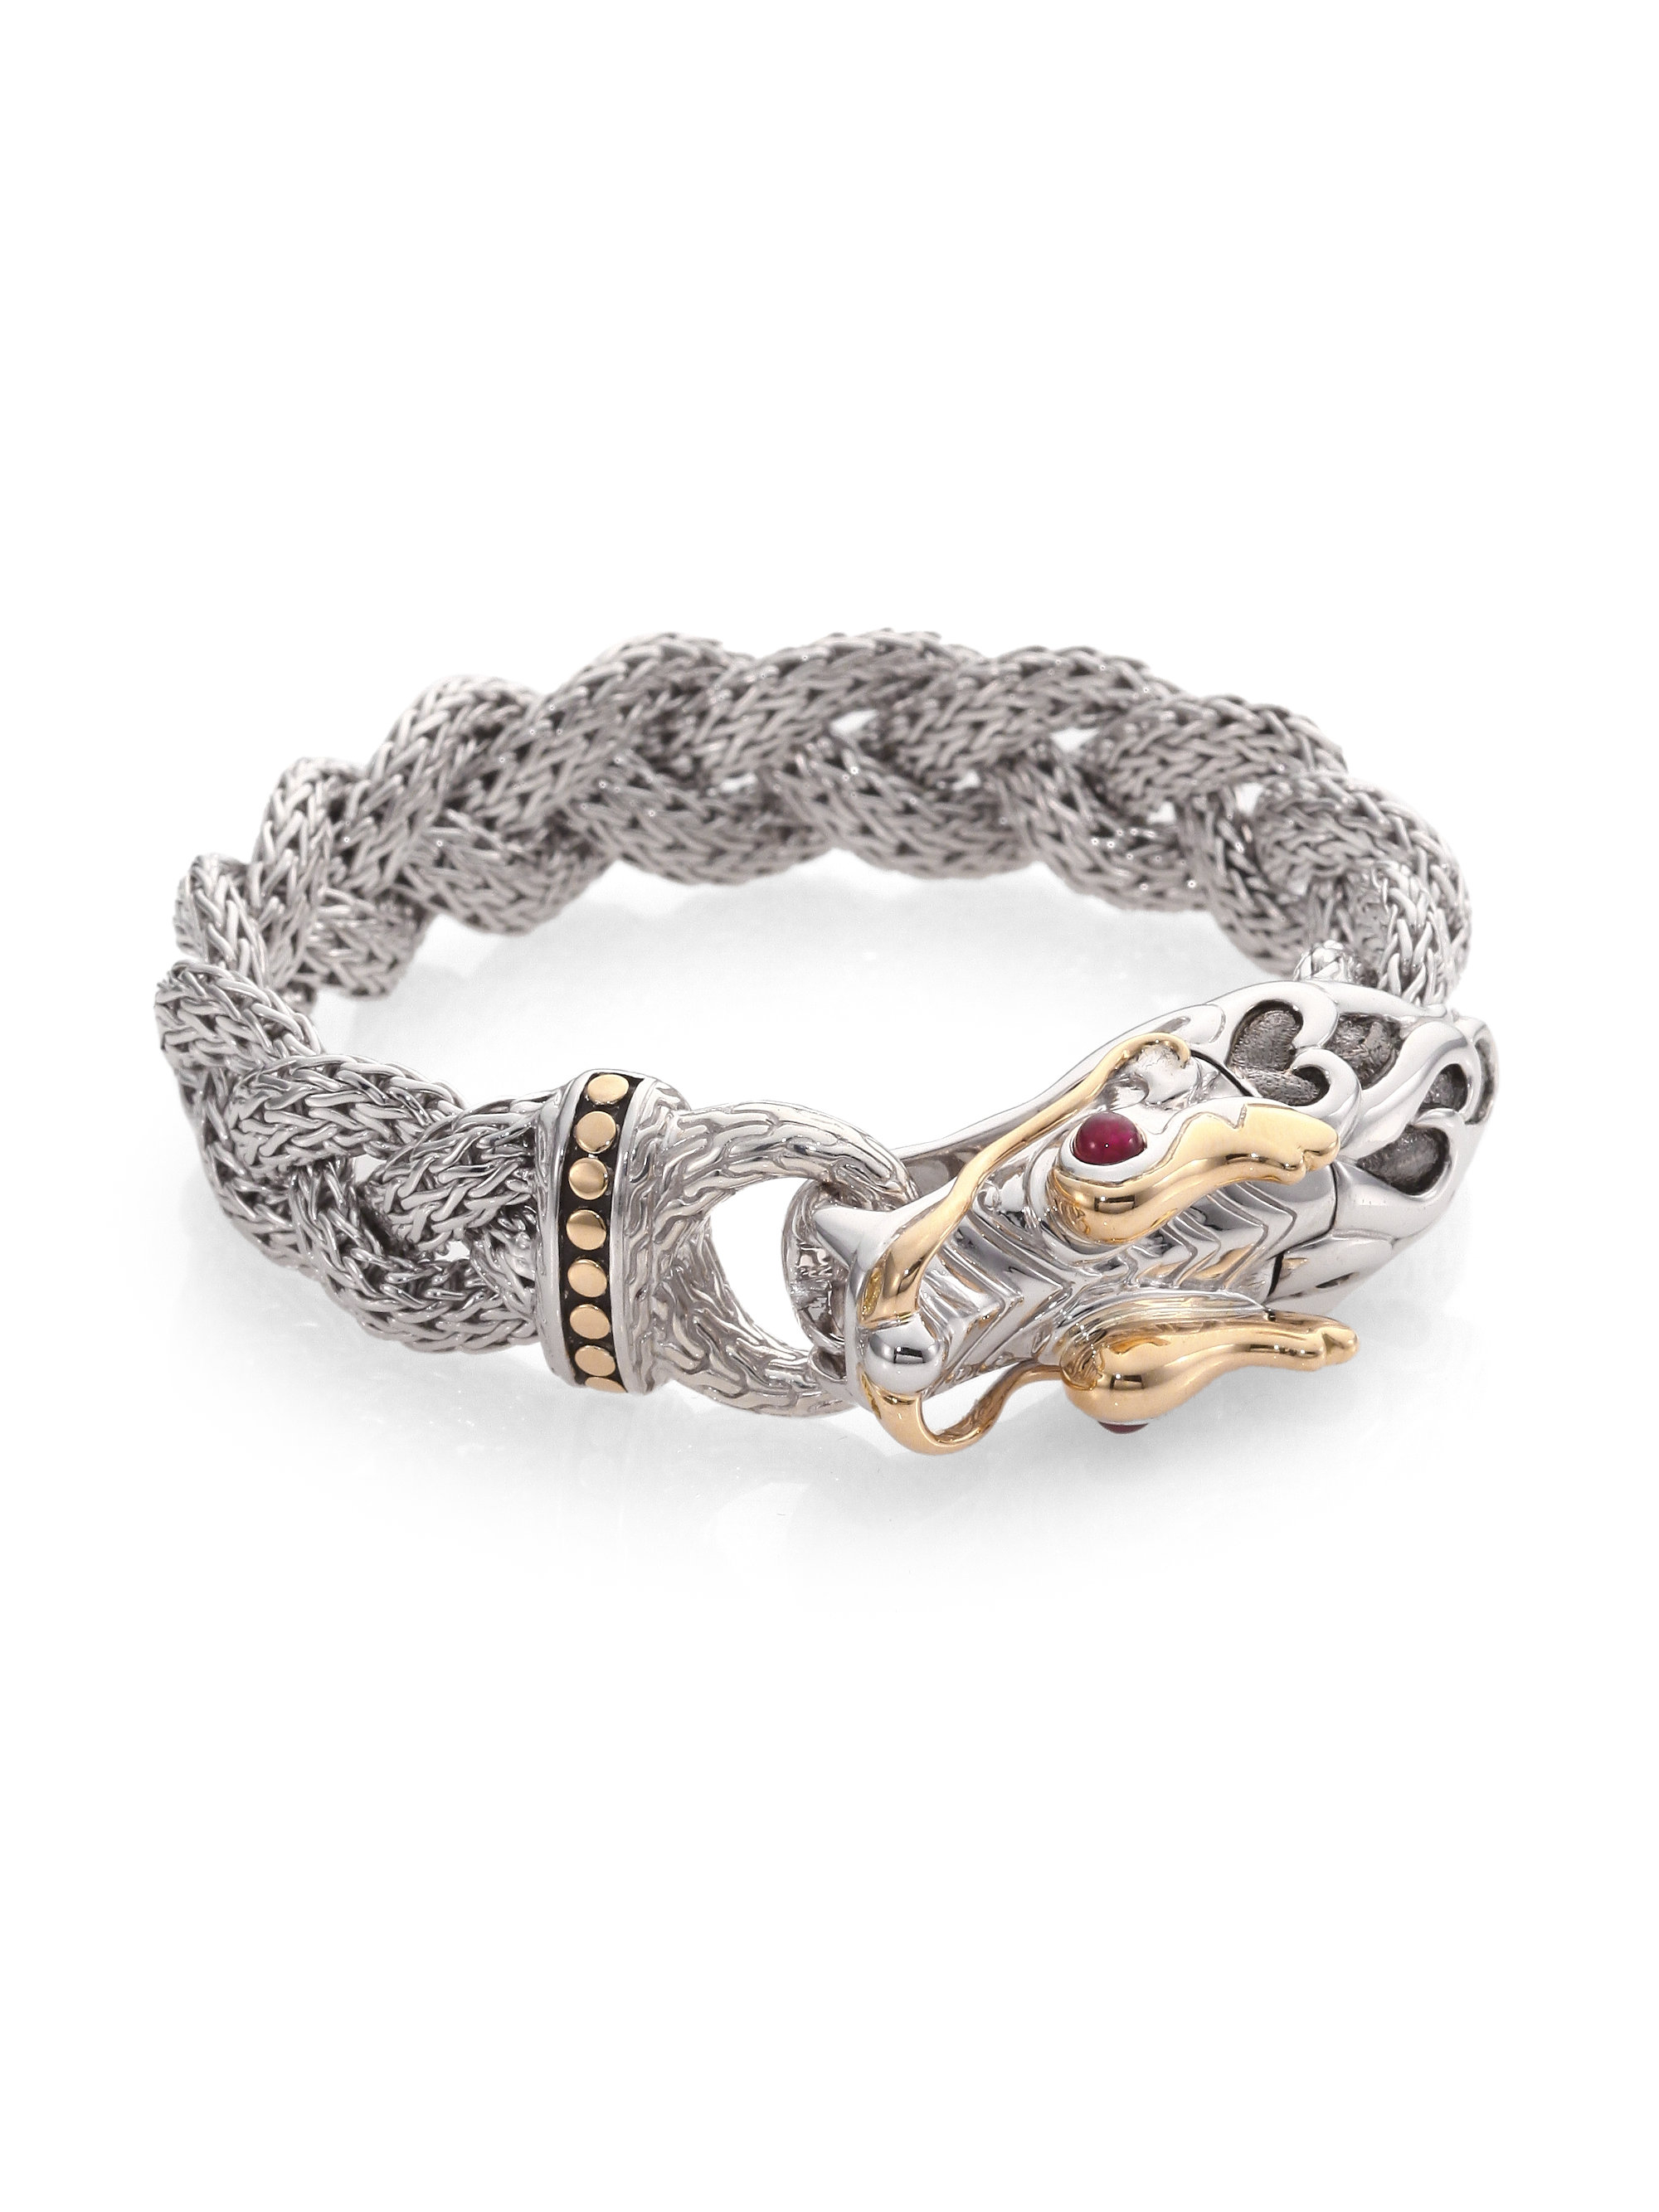 warrior cubic bangle bracelet bangles sterling gold in silver bracelets keith jack rose zirconia and